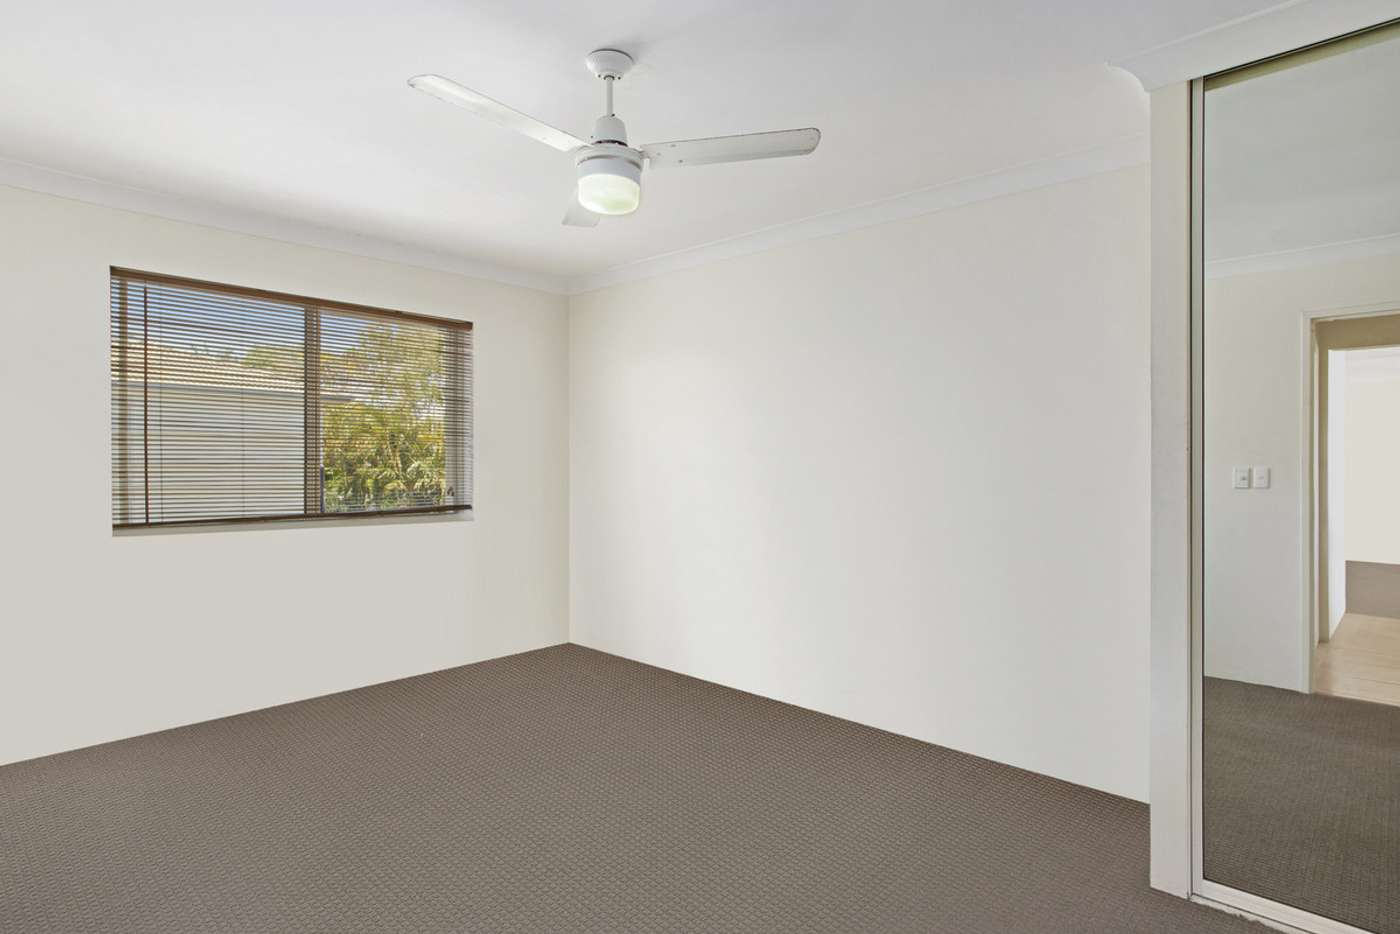 Sixth view of Homely unit listing, 250/19 Burleigh Street, Burleigh Heads QLD 4220